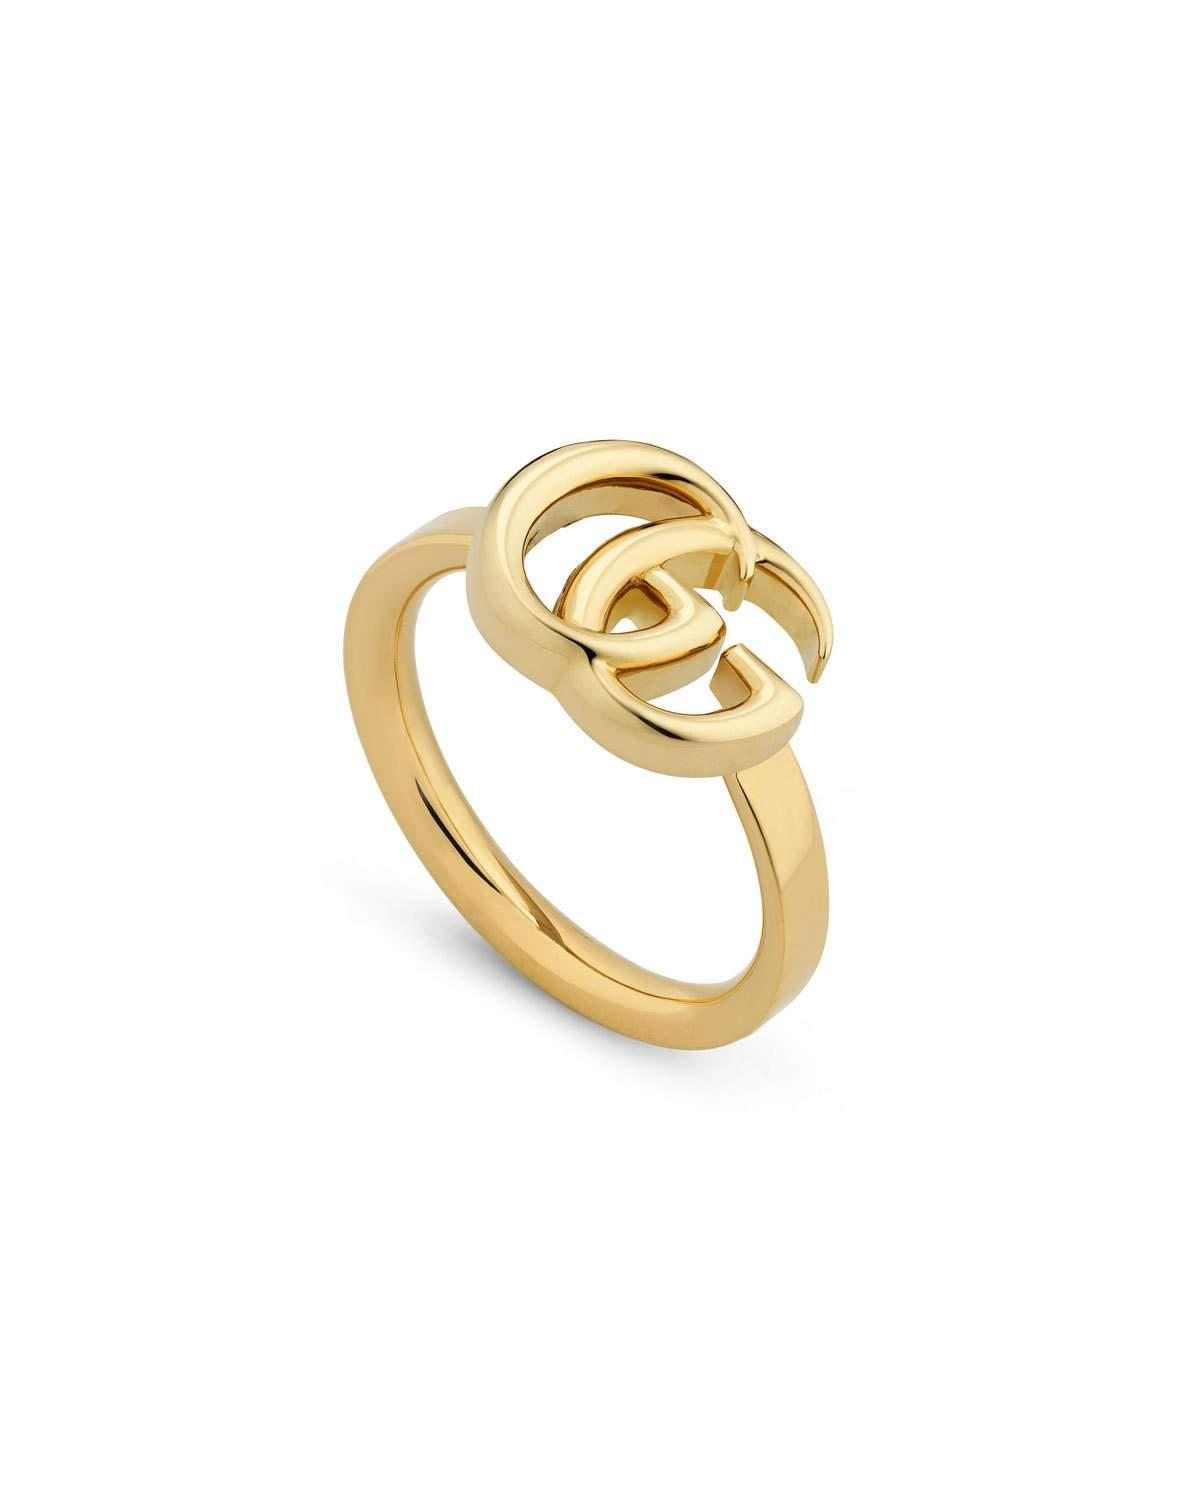 33a1f659f41 Gucci 18K Yellow Gold 13Mm Gg Running Ring